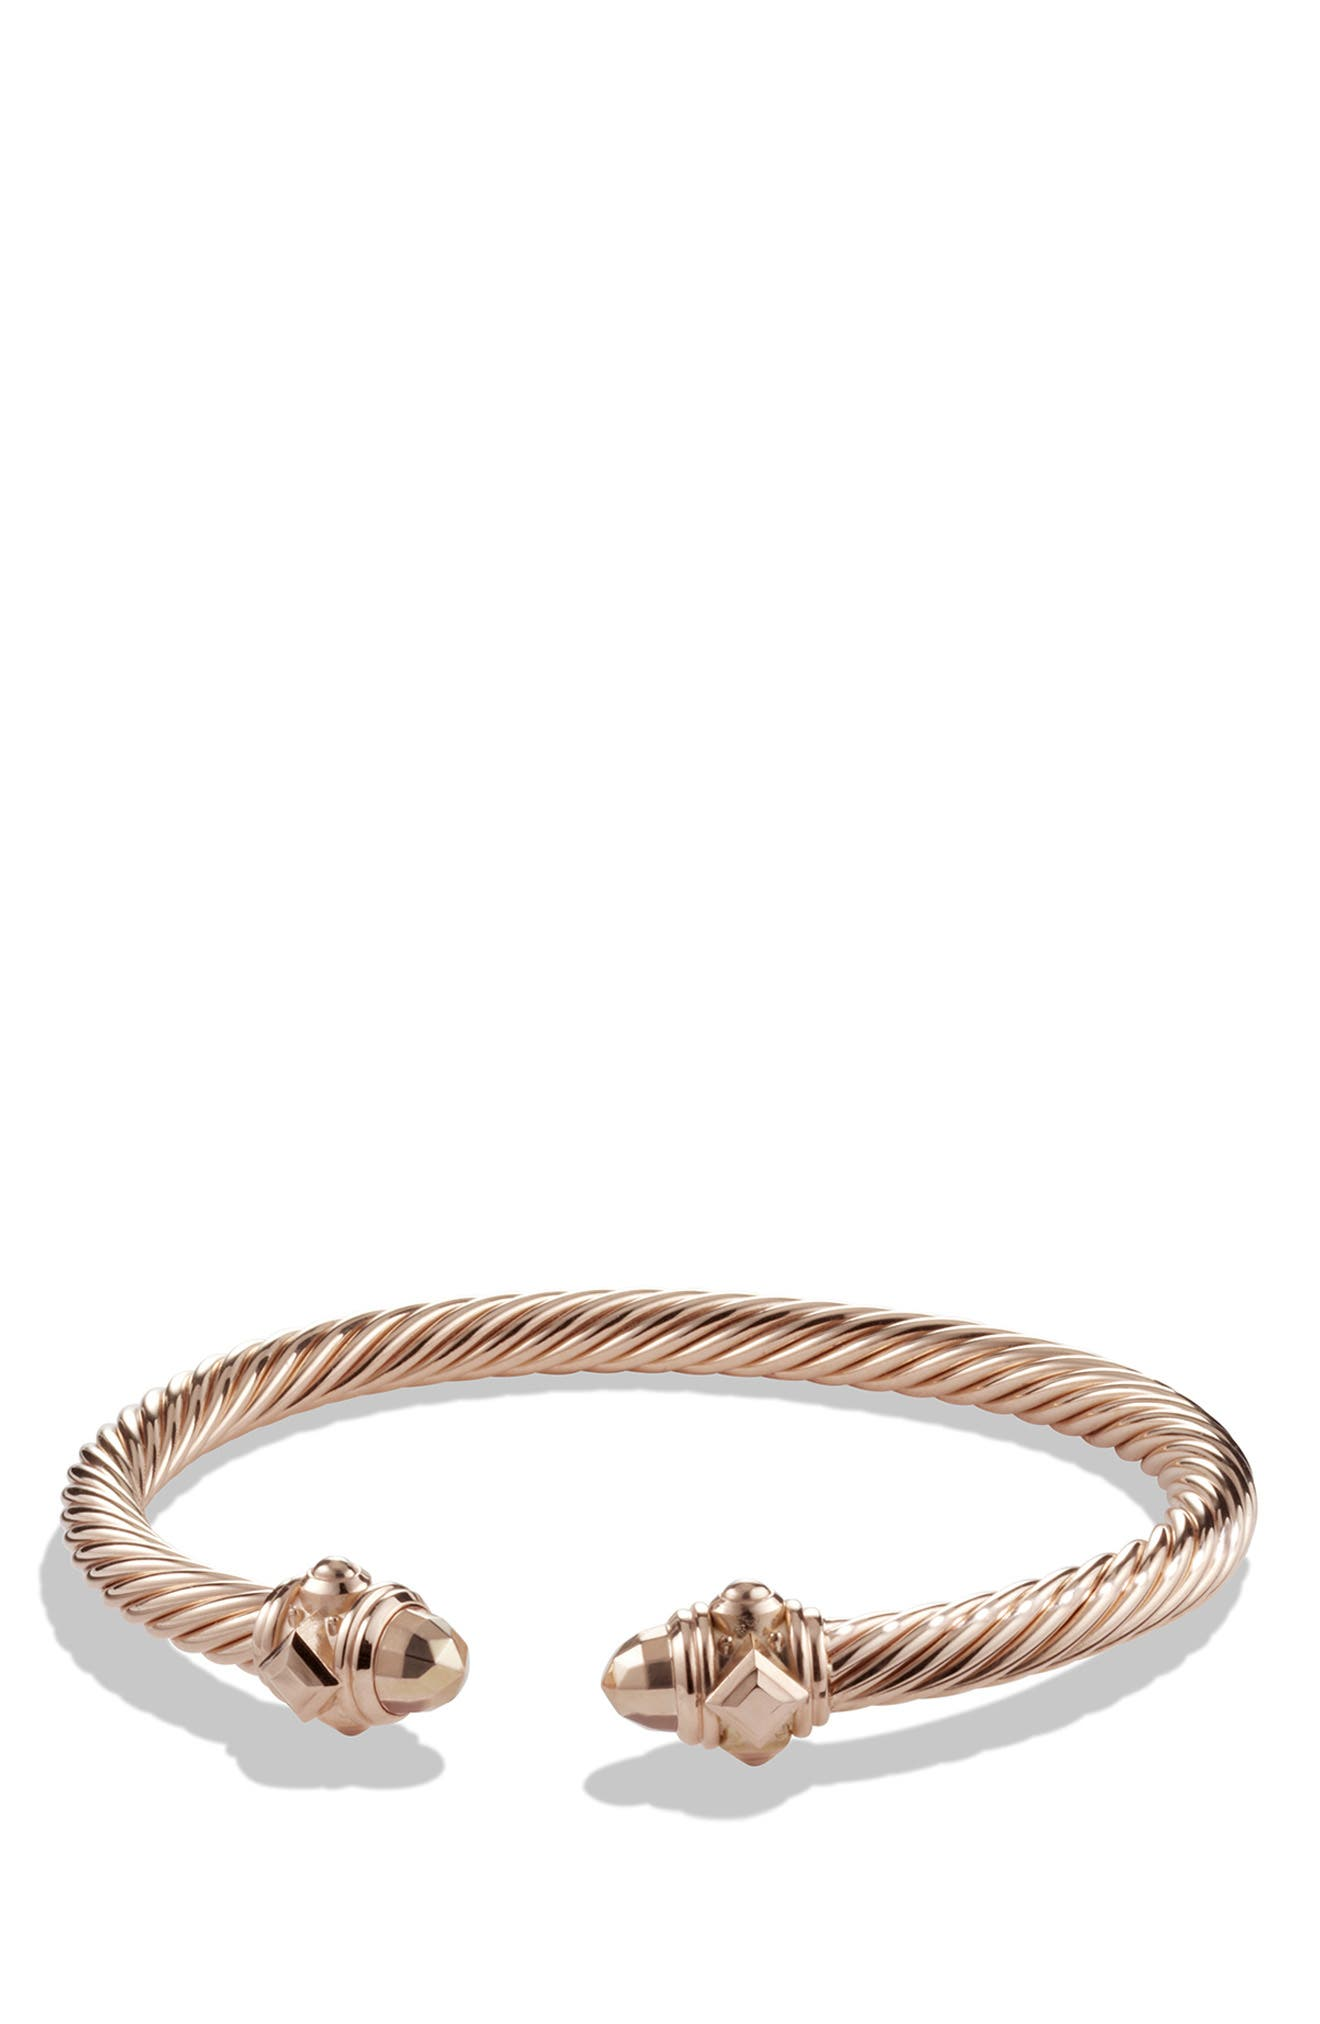 Renaissance Bracelet in 18K Rose Gold, 5mm,                         Main,                         color, ROSE GOLD